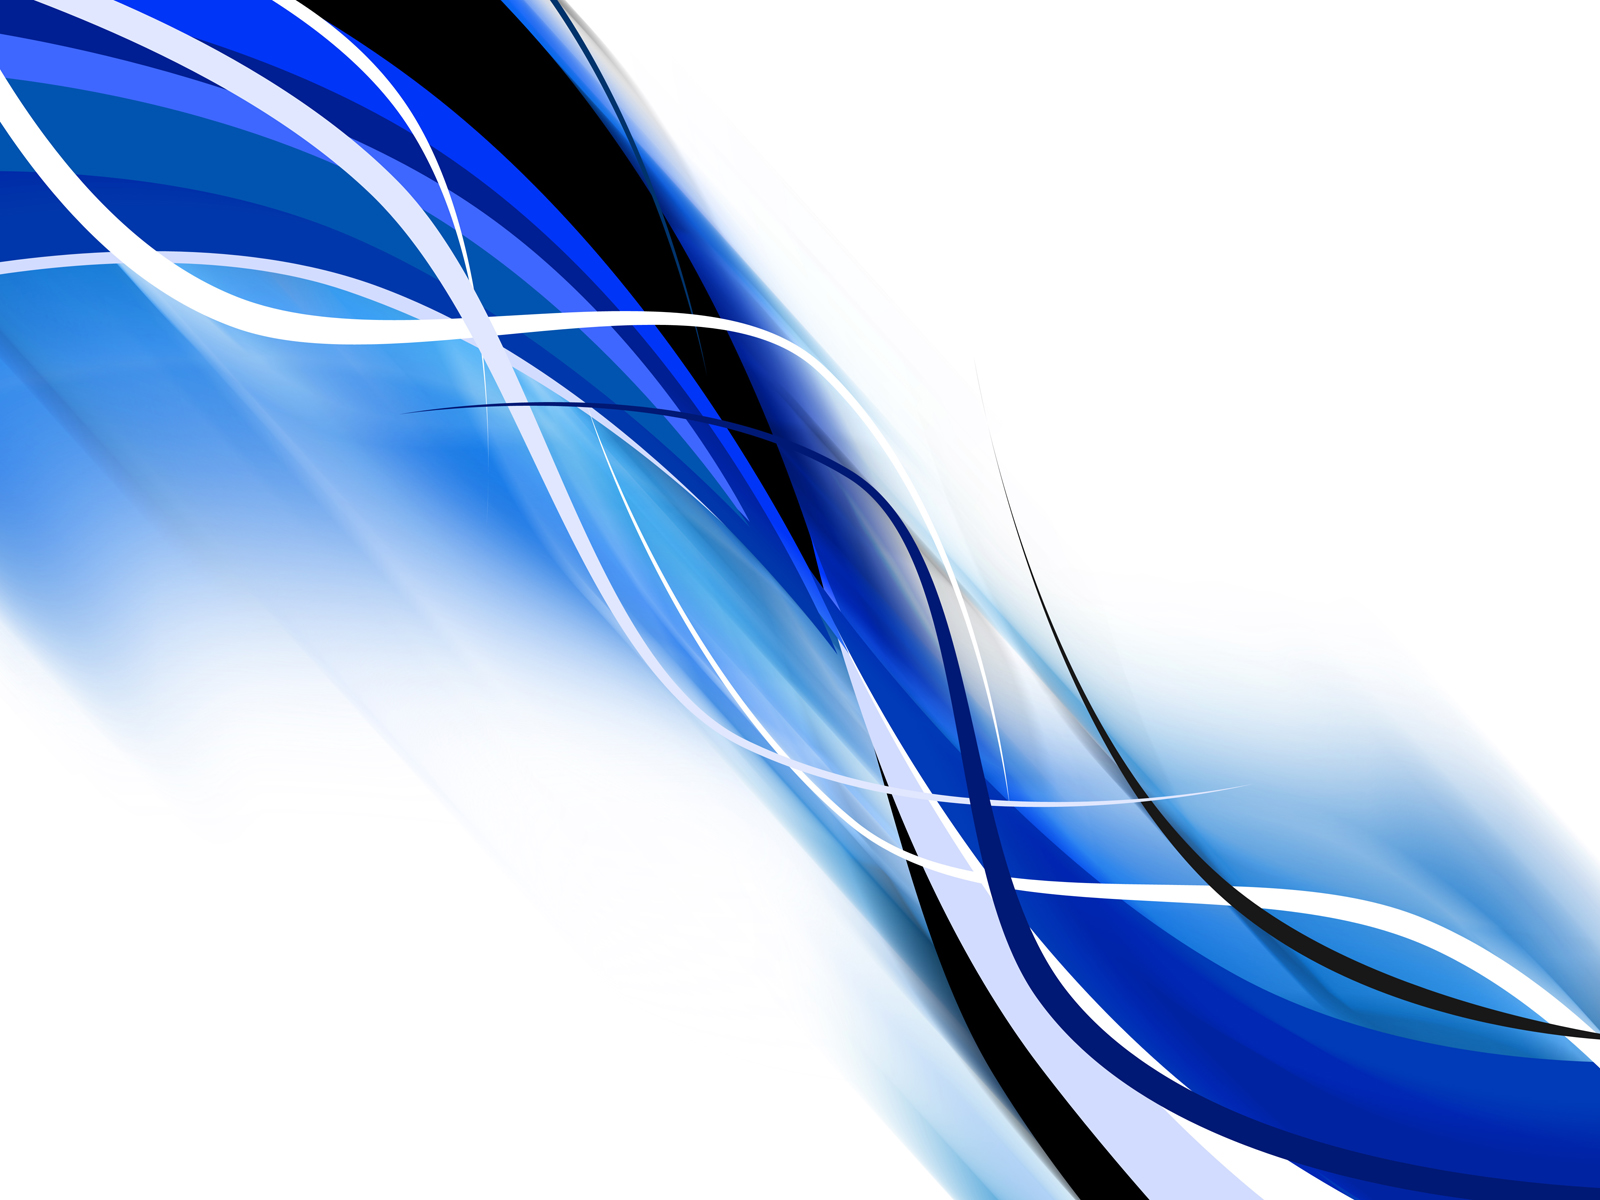 Blue coloured waves PPT Backgrounds